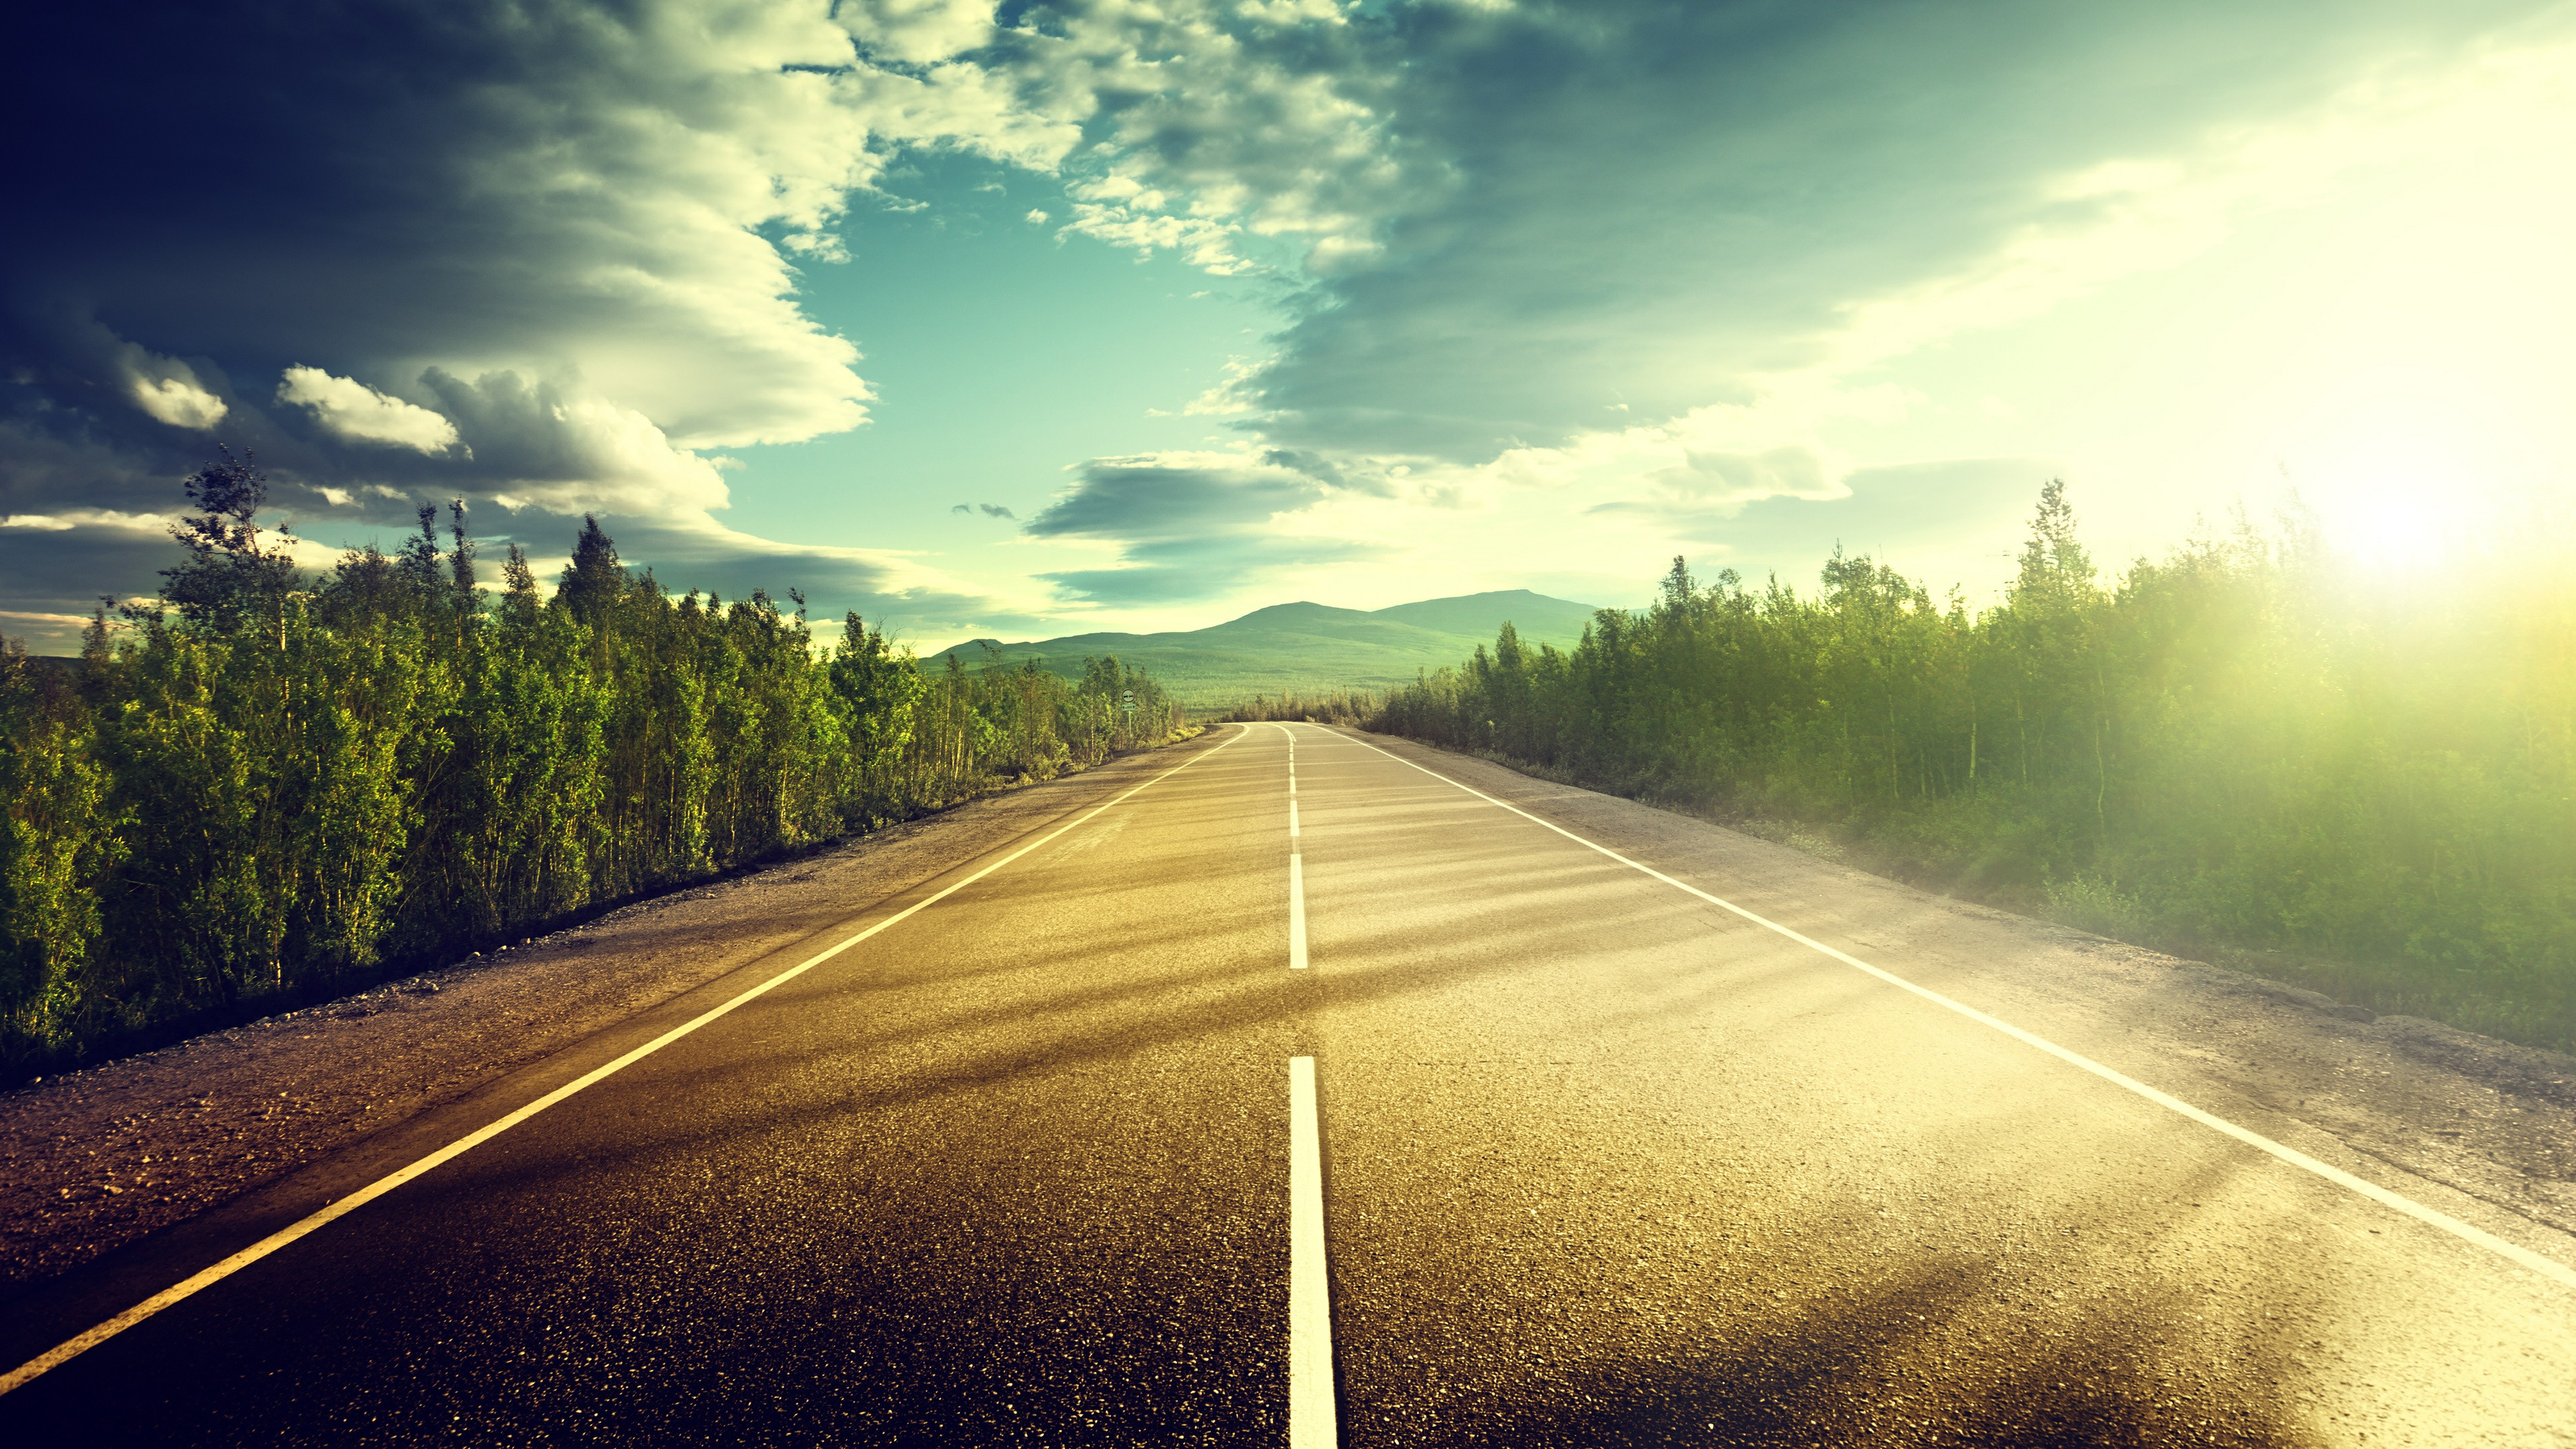 Endless road in the sunshine wallpaper